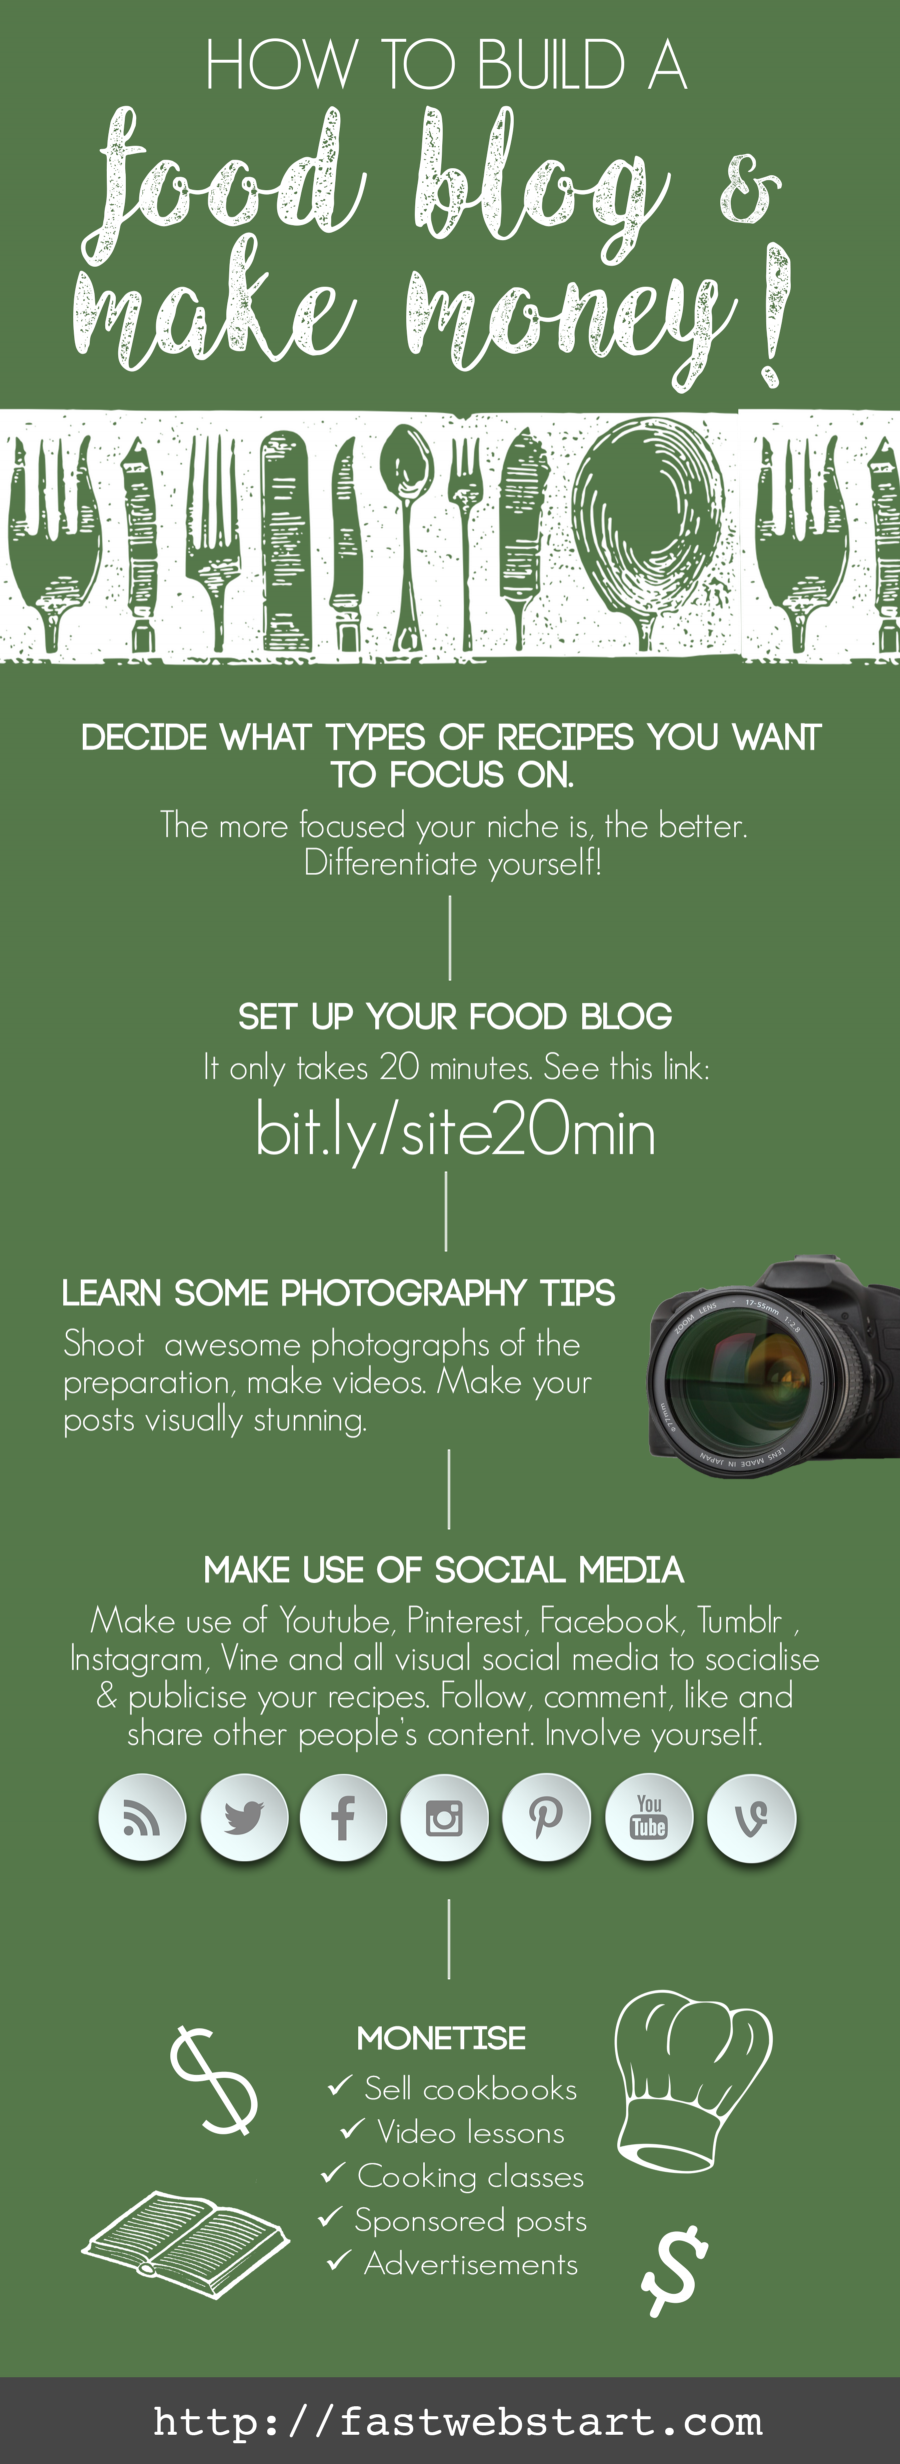 How to Build a Food Blog and Make Money #infographic